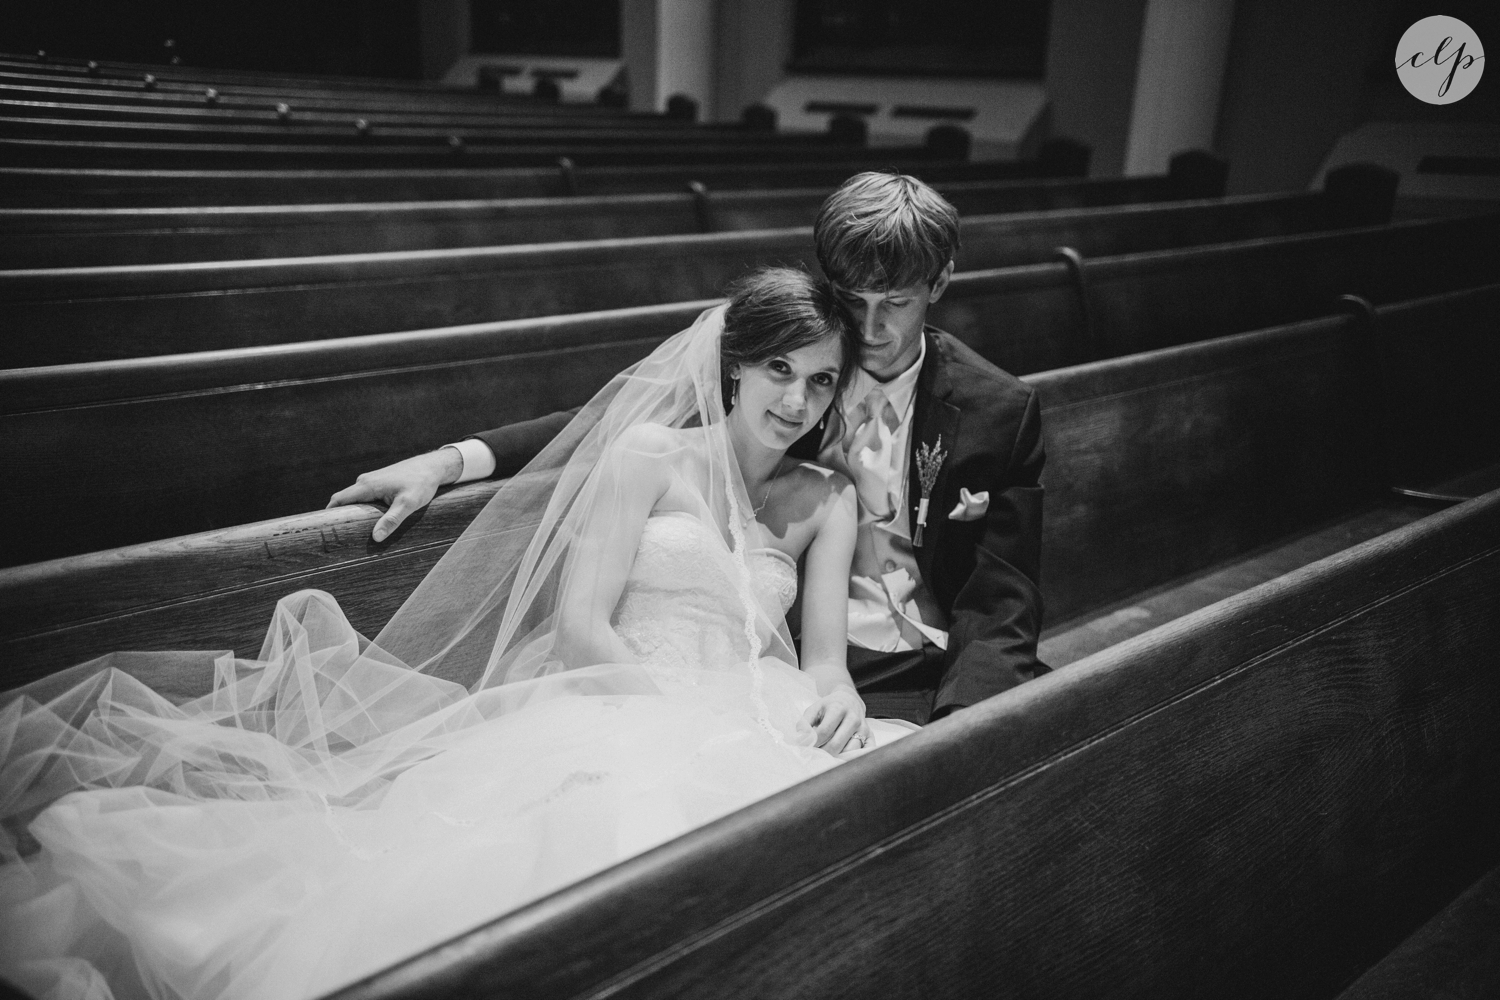 st-louis-missouri-wedding-photographer_5832.jpg